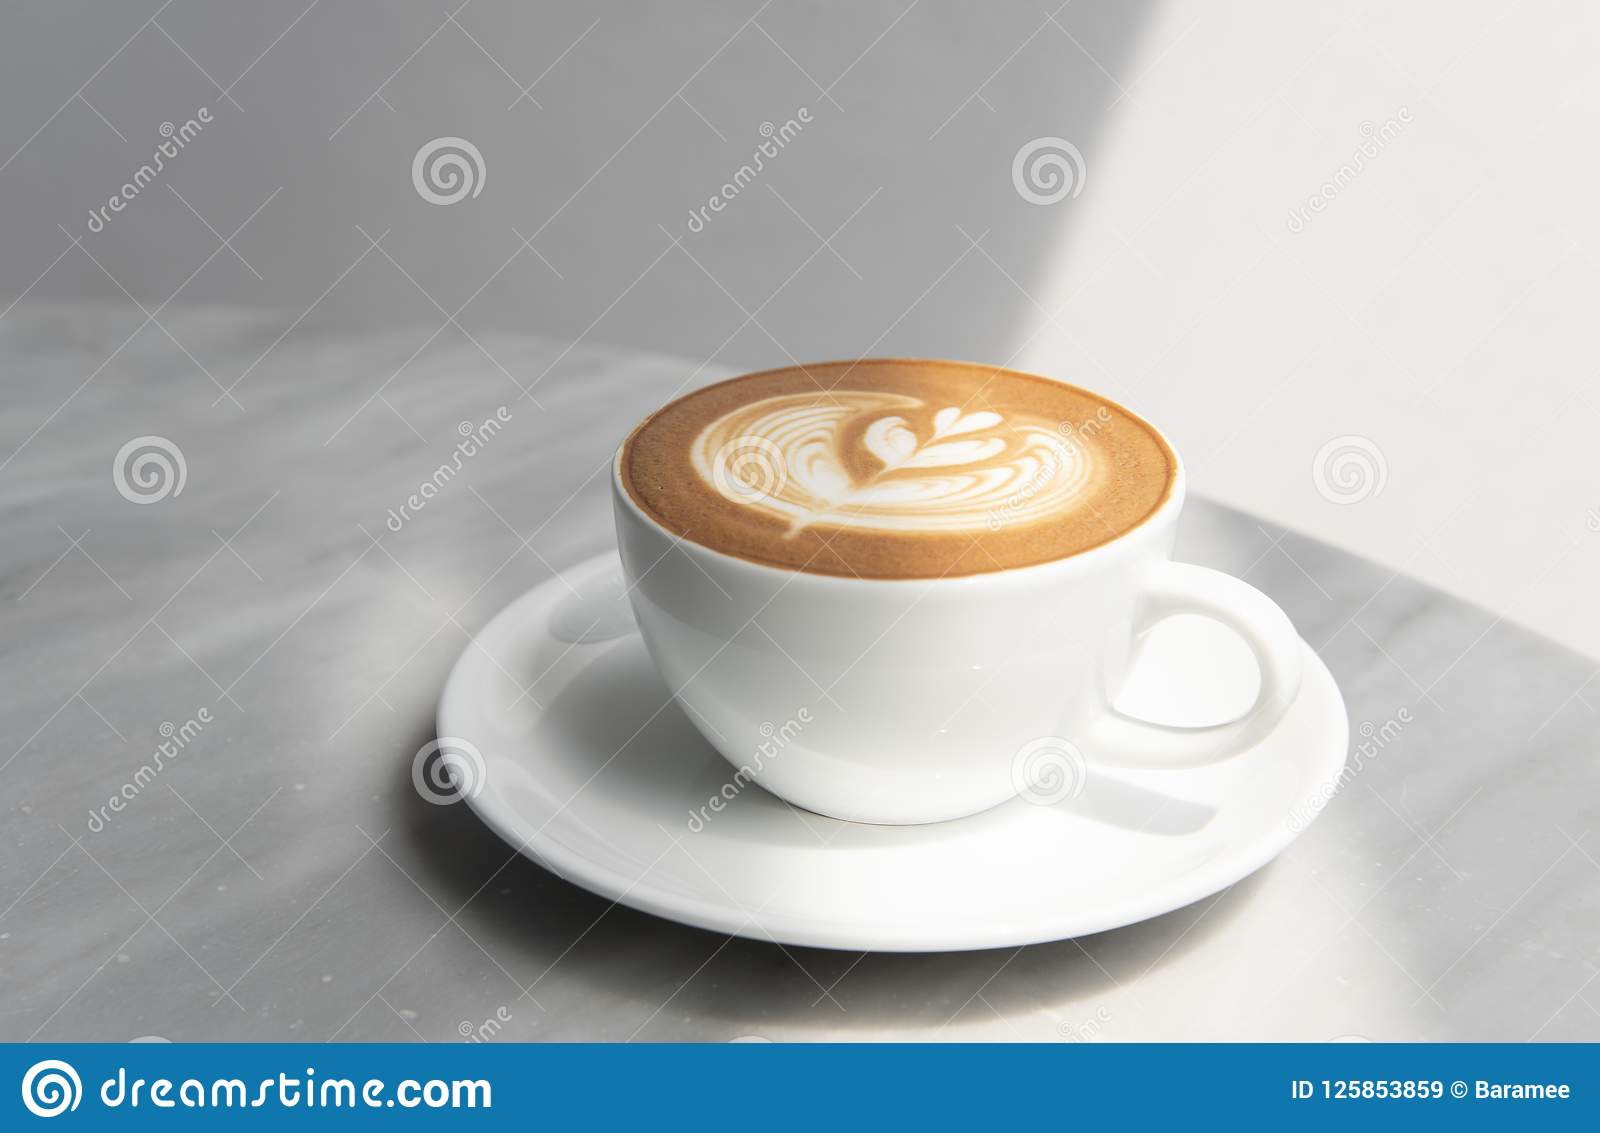 Latte or Cappuccino with frothy foam, coffee cup top view